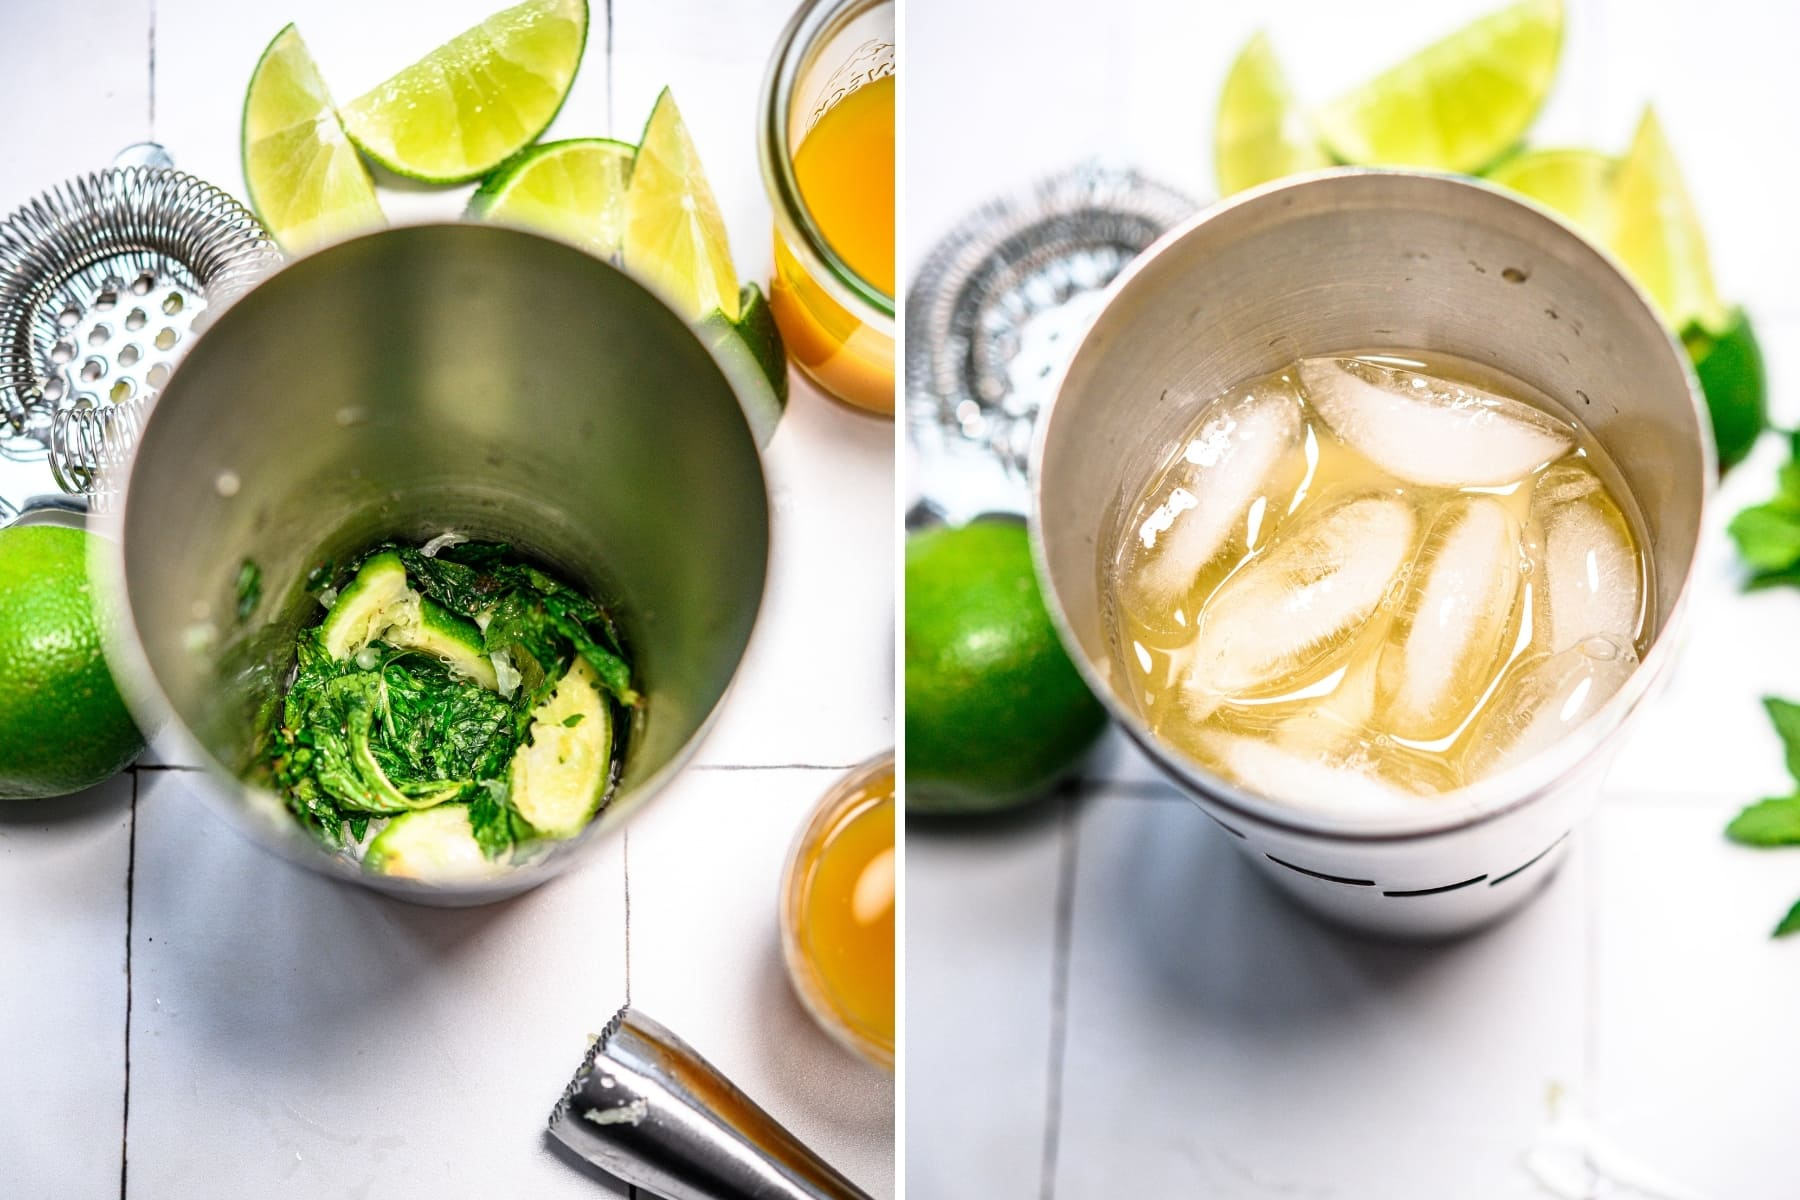 on the left side, muddled mint and limes in a cocktail shaker. on the right side, mango mojito with ice in cocktail shaker.